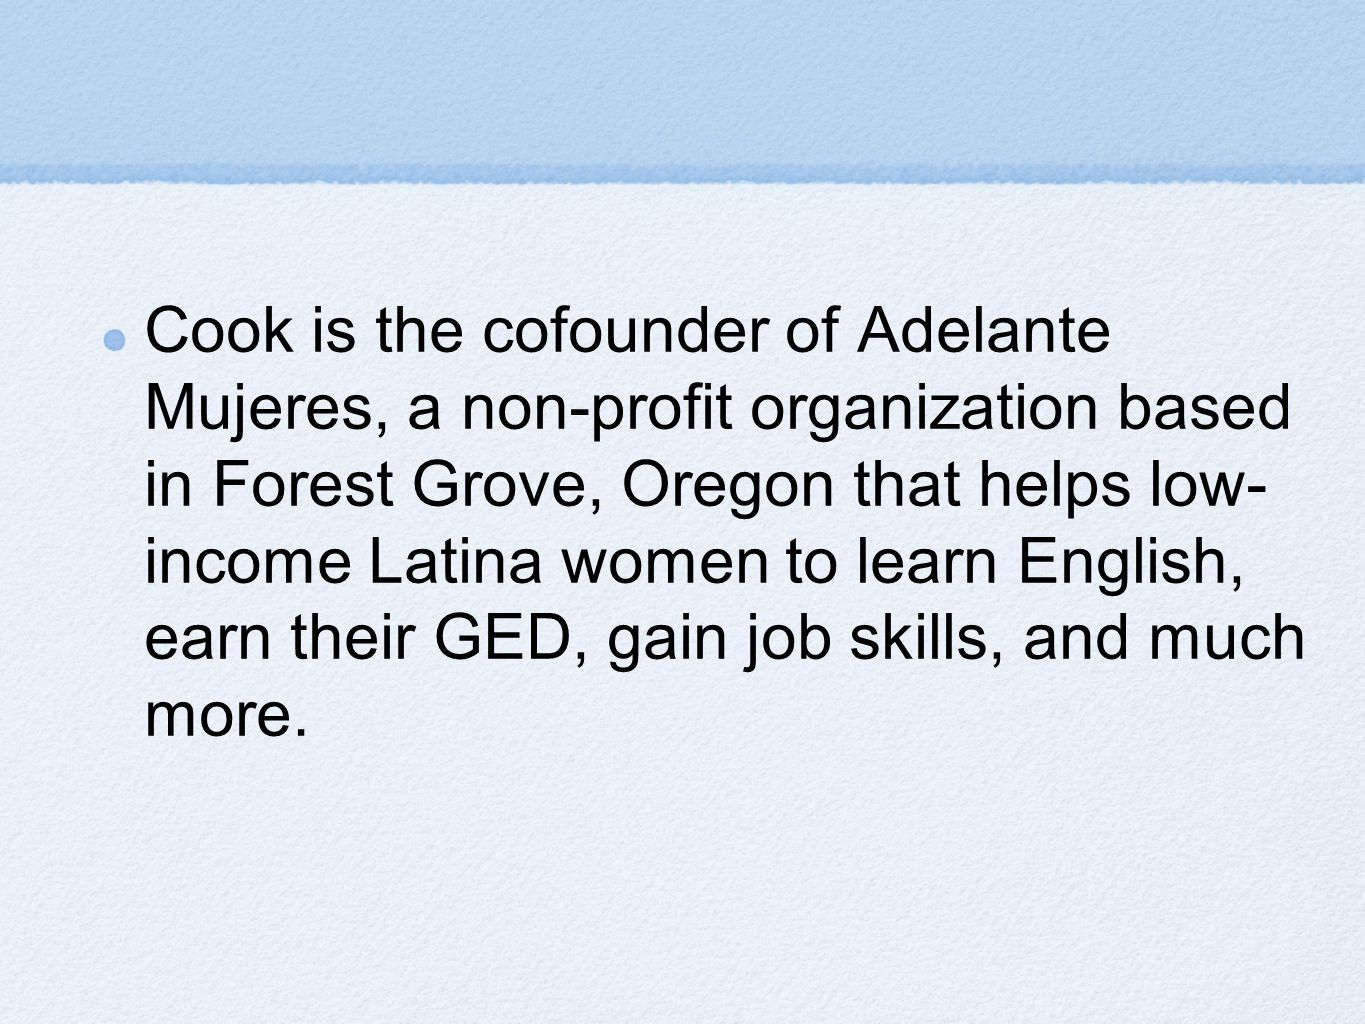 Cook is the cofounder of Adelante Mujeres, a non-profit organization based in Forest Grove, Oregon that helps low- income Latina women to learn English, earn their GED, gain job skills, and much more.